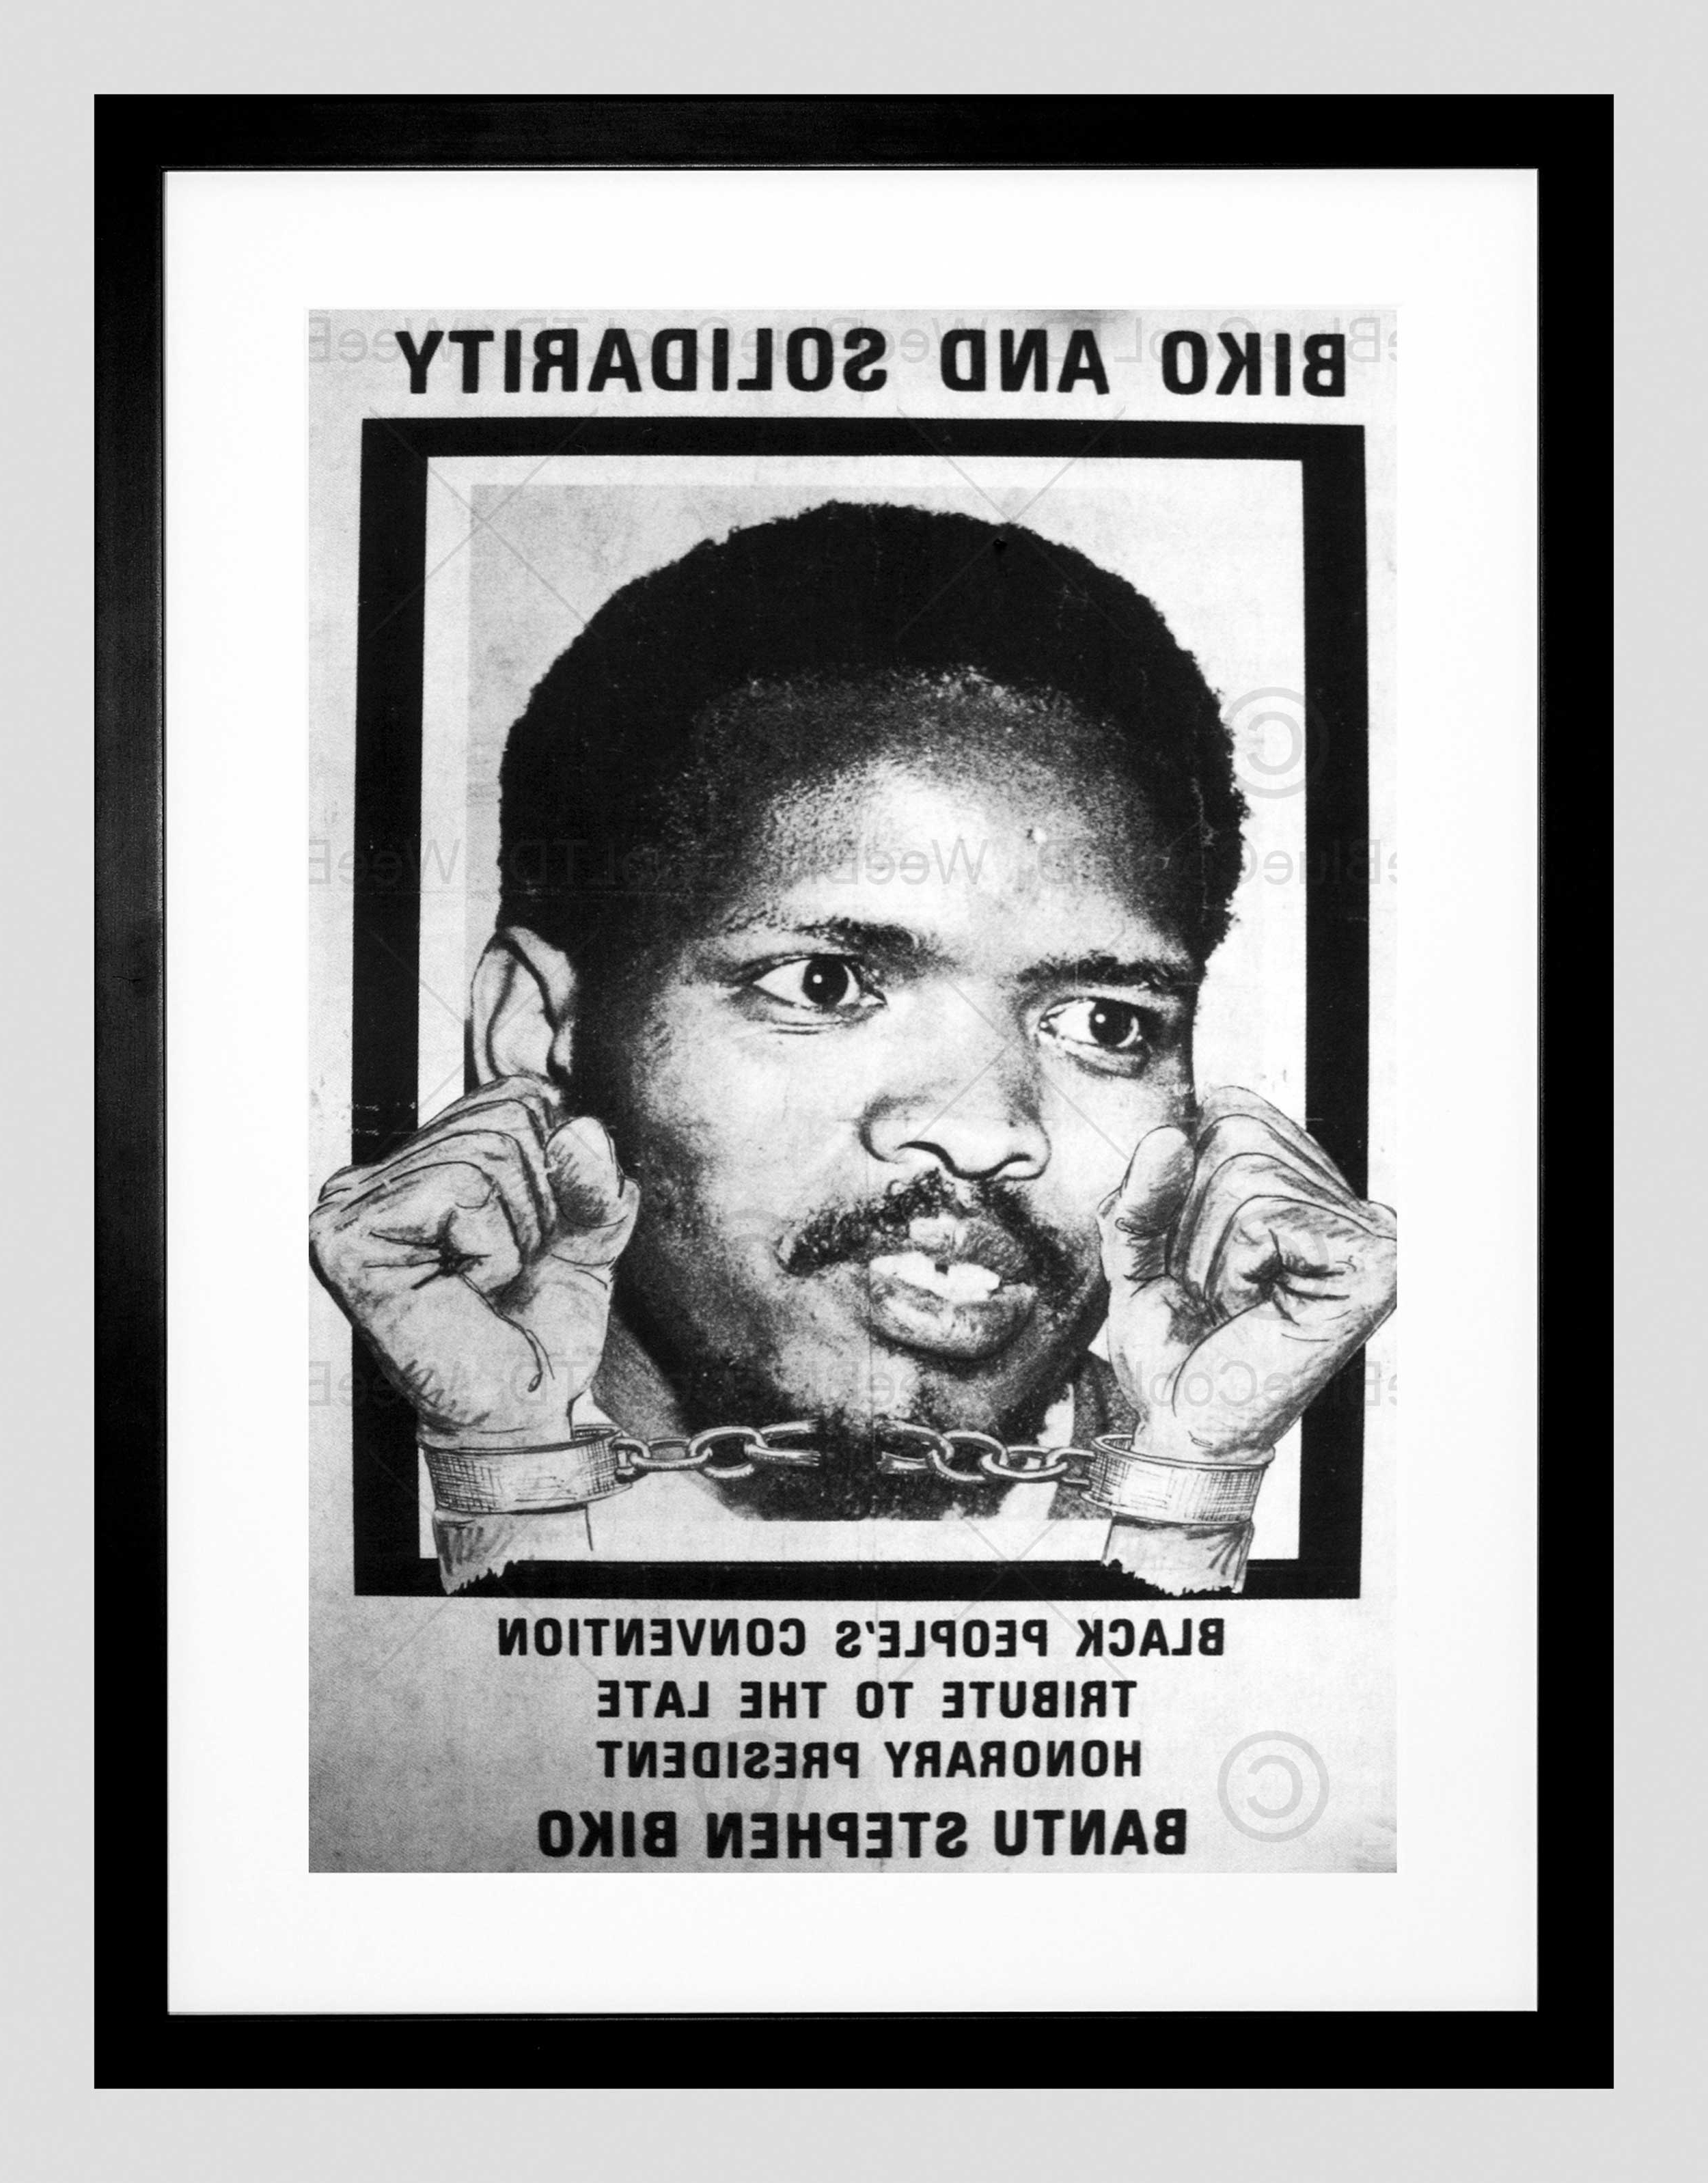 Trendy Political Steve Biko Anc Apartheid South Africa Framed Art Print Pertaining To South Africa Framed Art Prints (View 13 of 15)